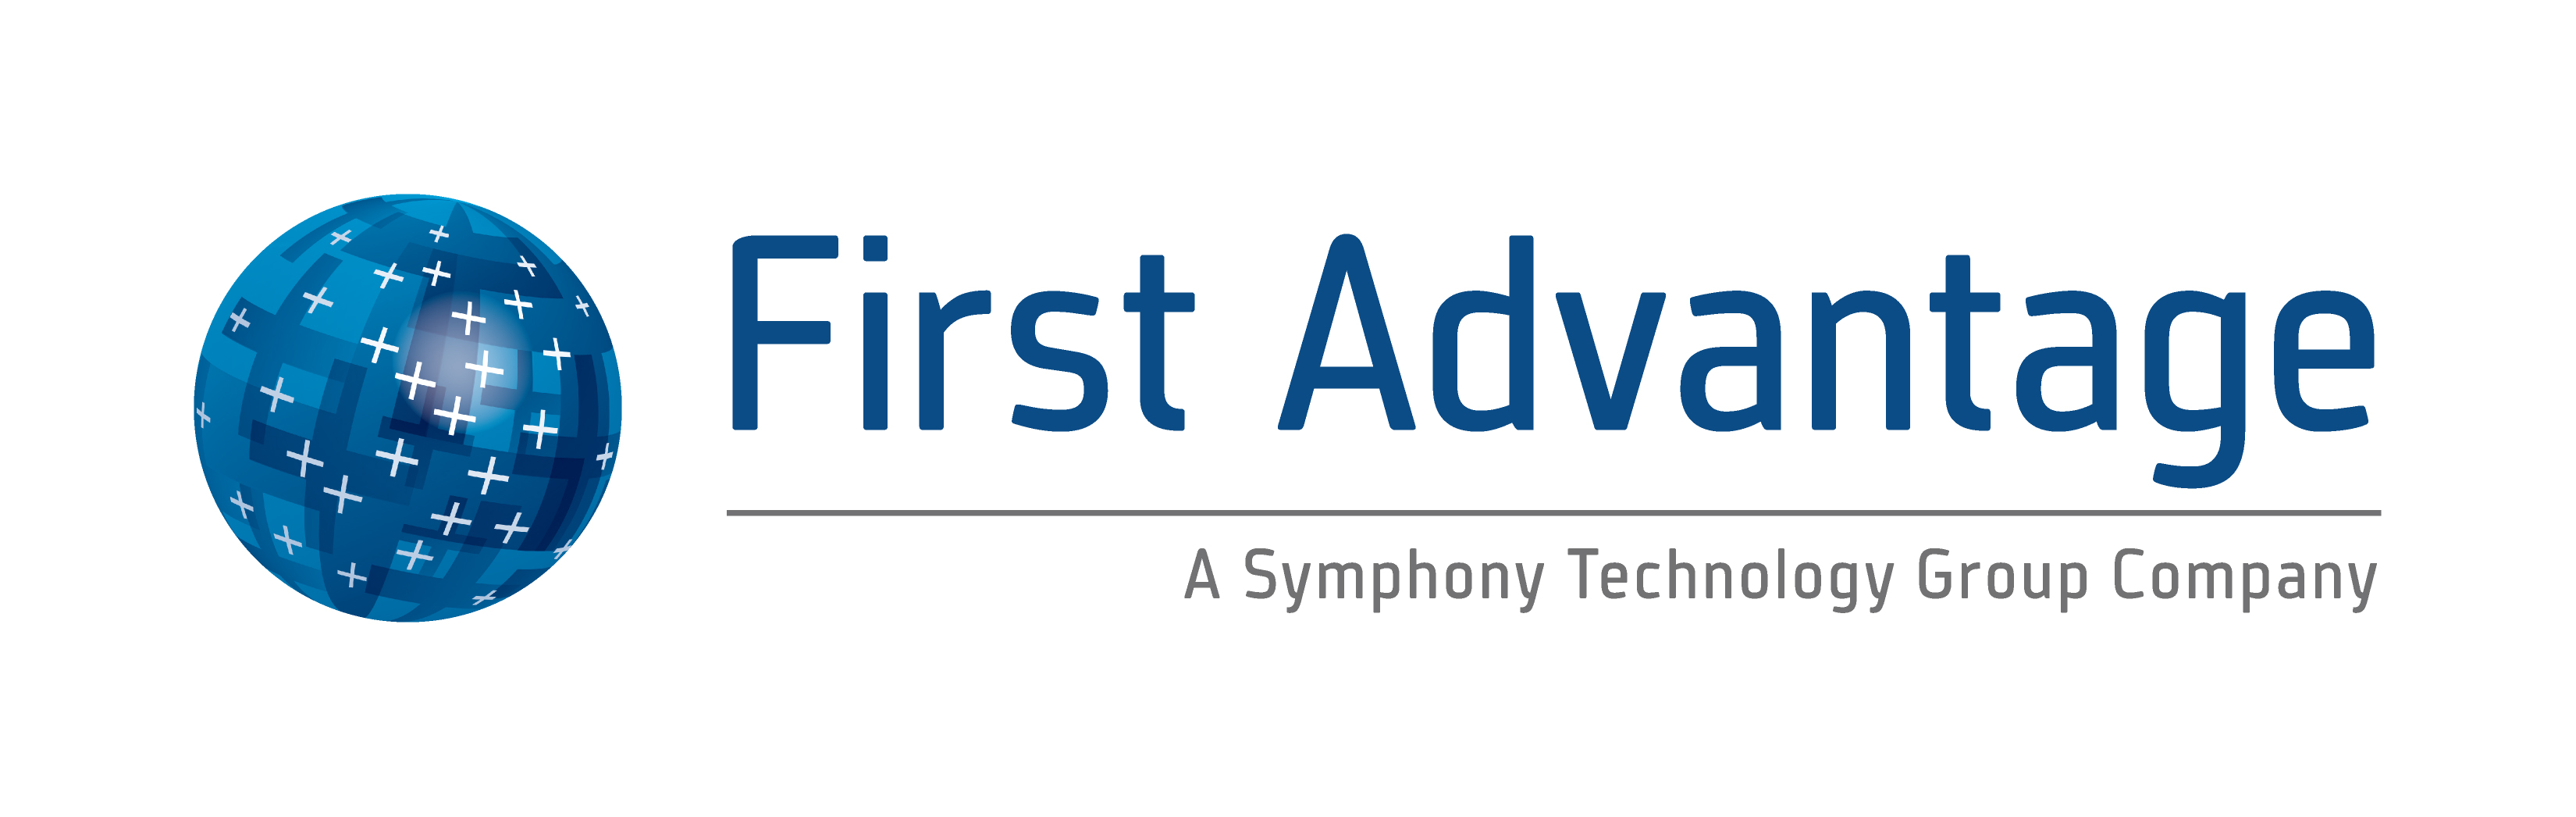 First-Advantage_Logo_4c